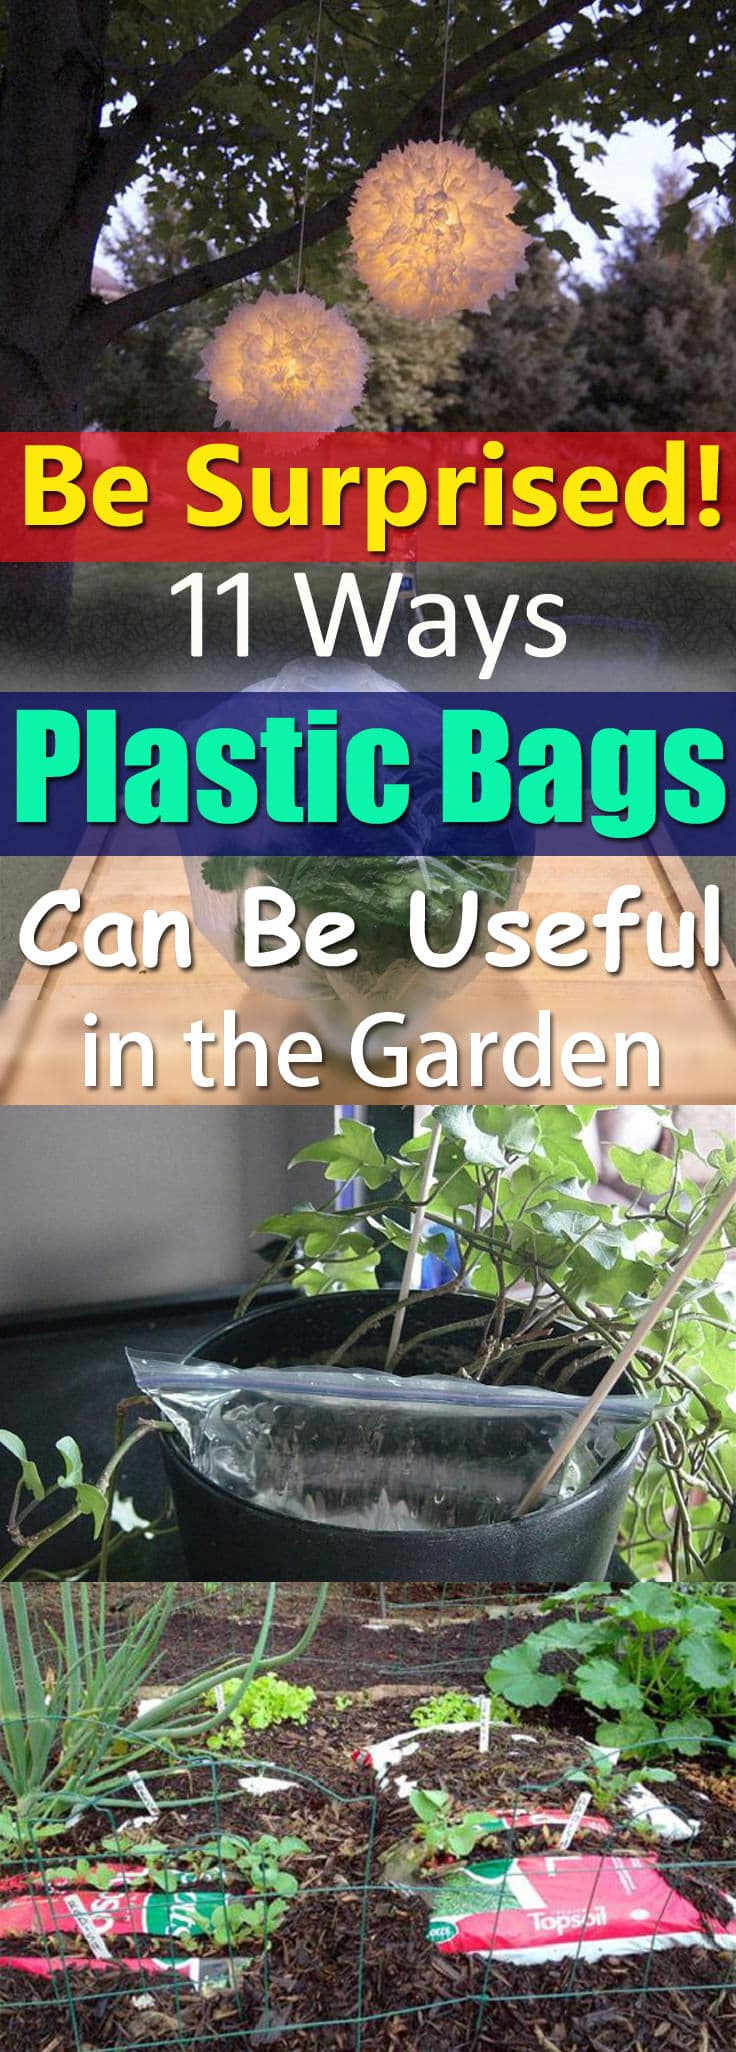 11 Diy Uses Of Plastic Bags In The Garden That Are Practical Cheap Balcony Garden Web